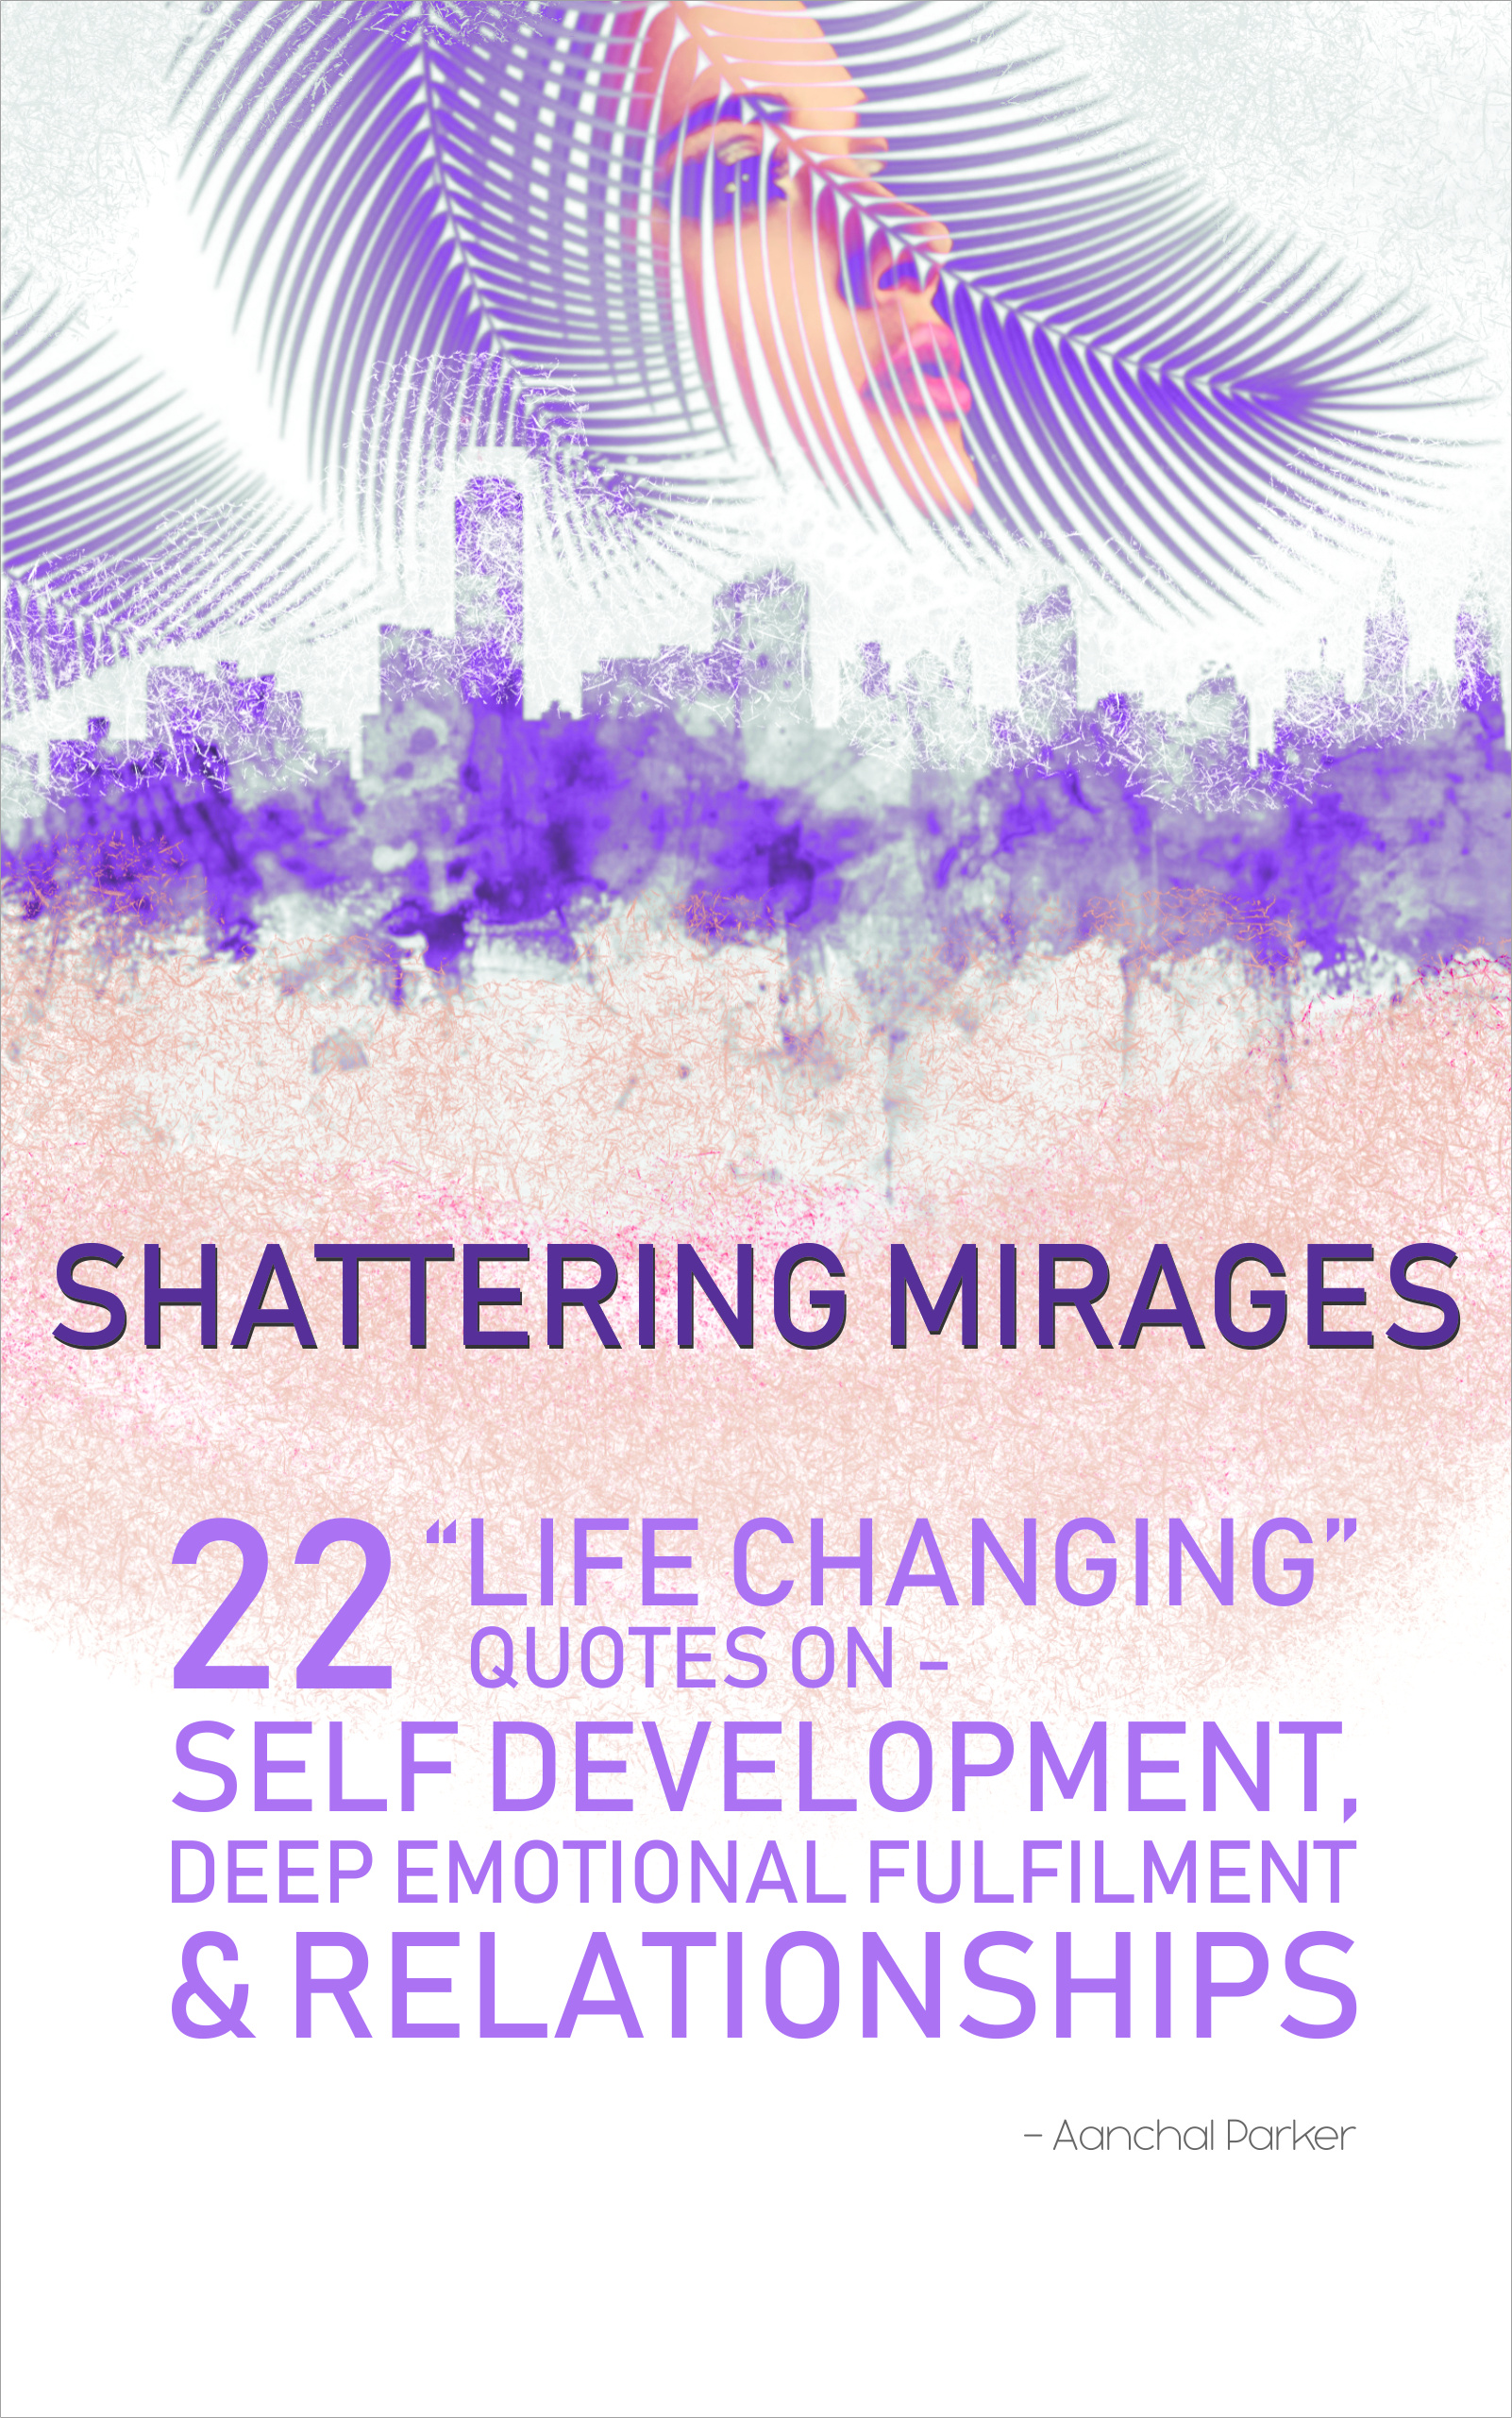 Shattering Mirages: 22 life changing quotes on self development, deep  emotional fulfilment and relationships, an Ebook by Aanchal Parker